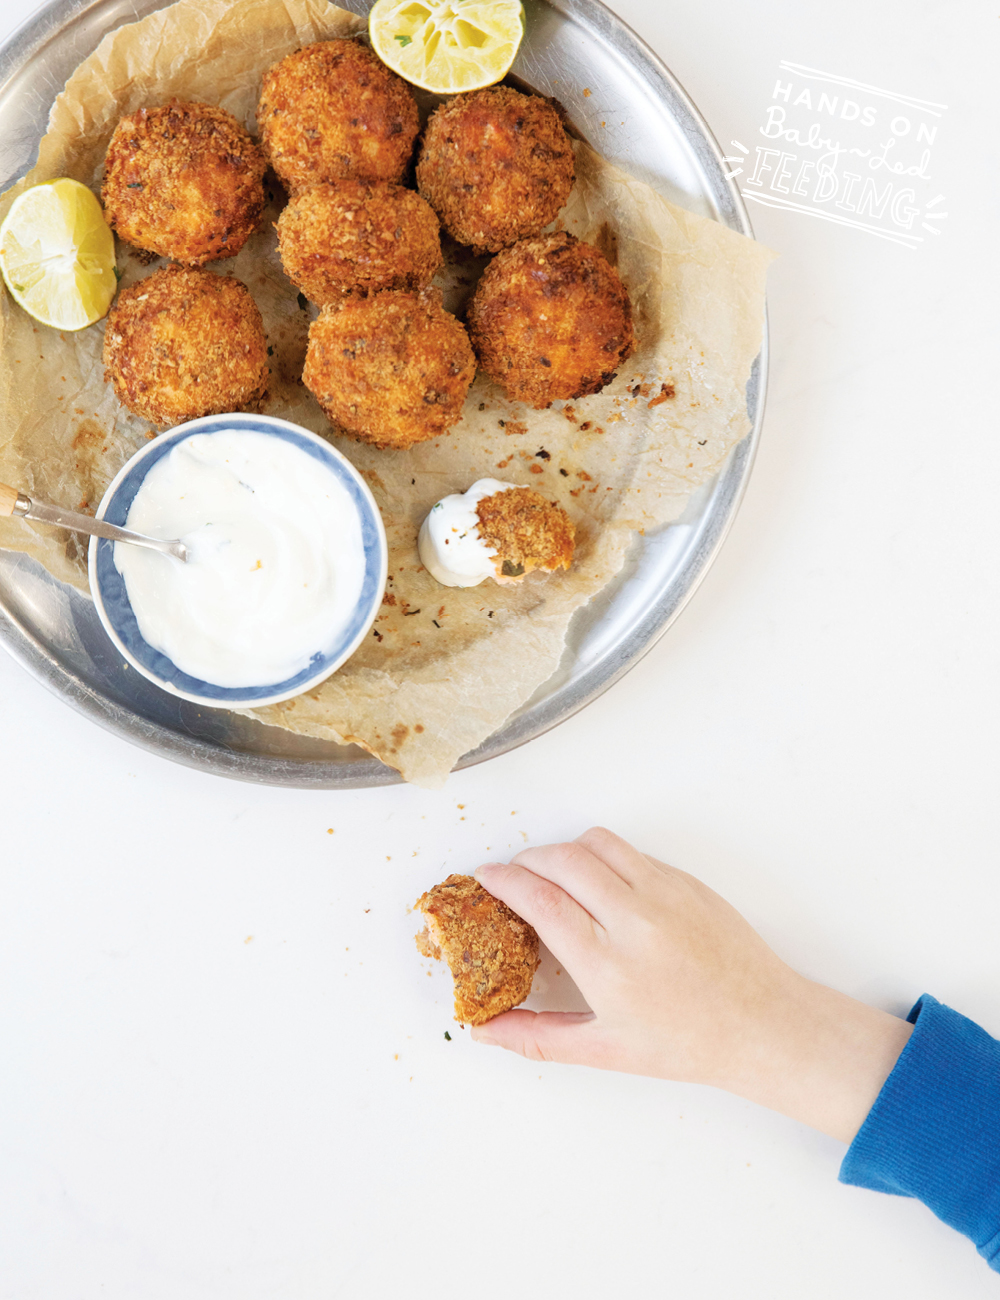 Baby Led Feeding Salmon Nuggets for baby led weaning Recipe Images